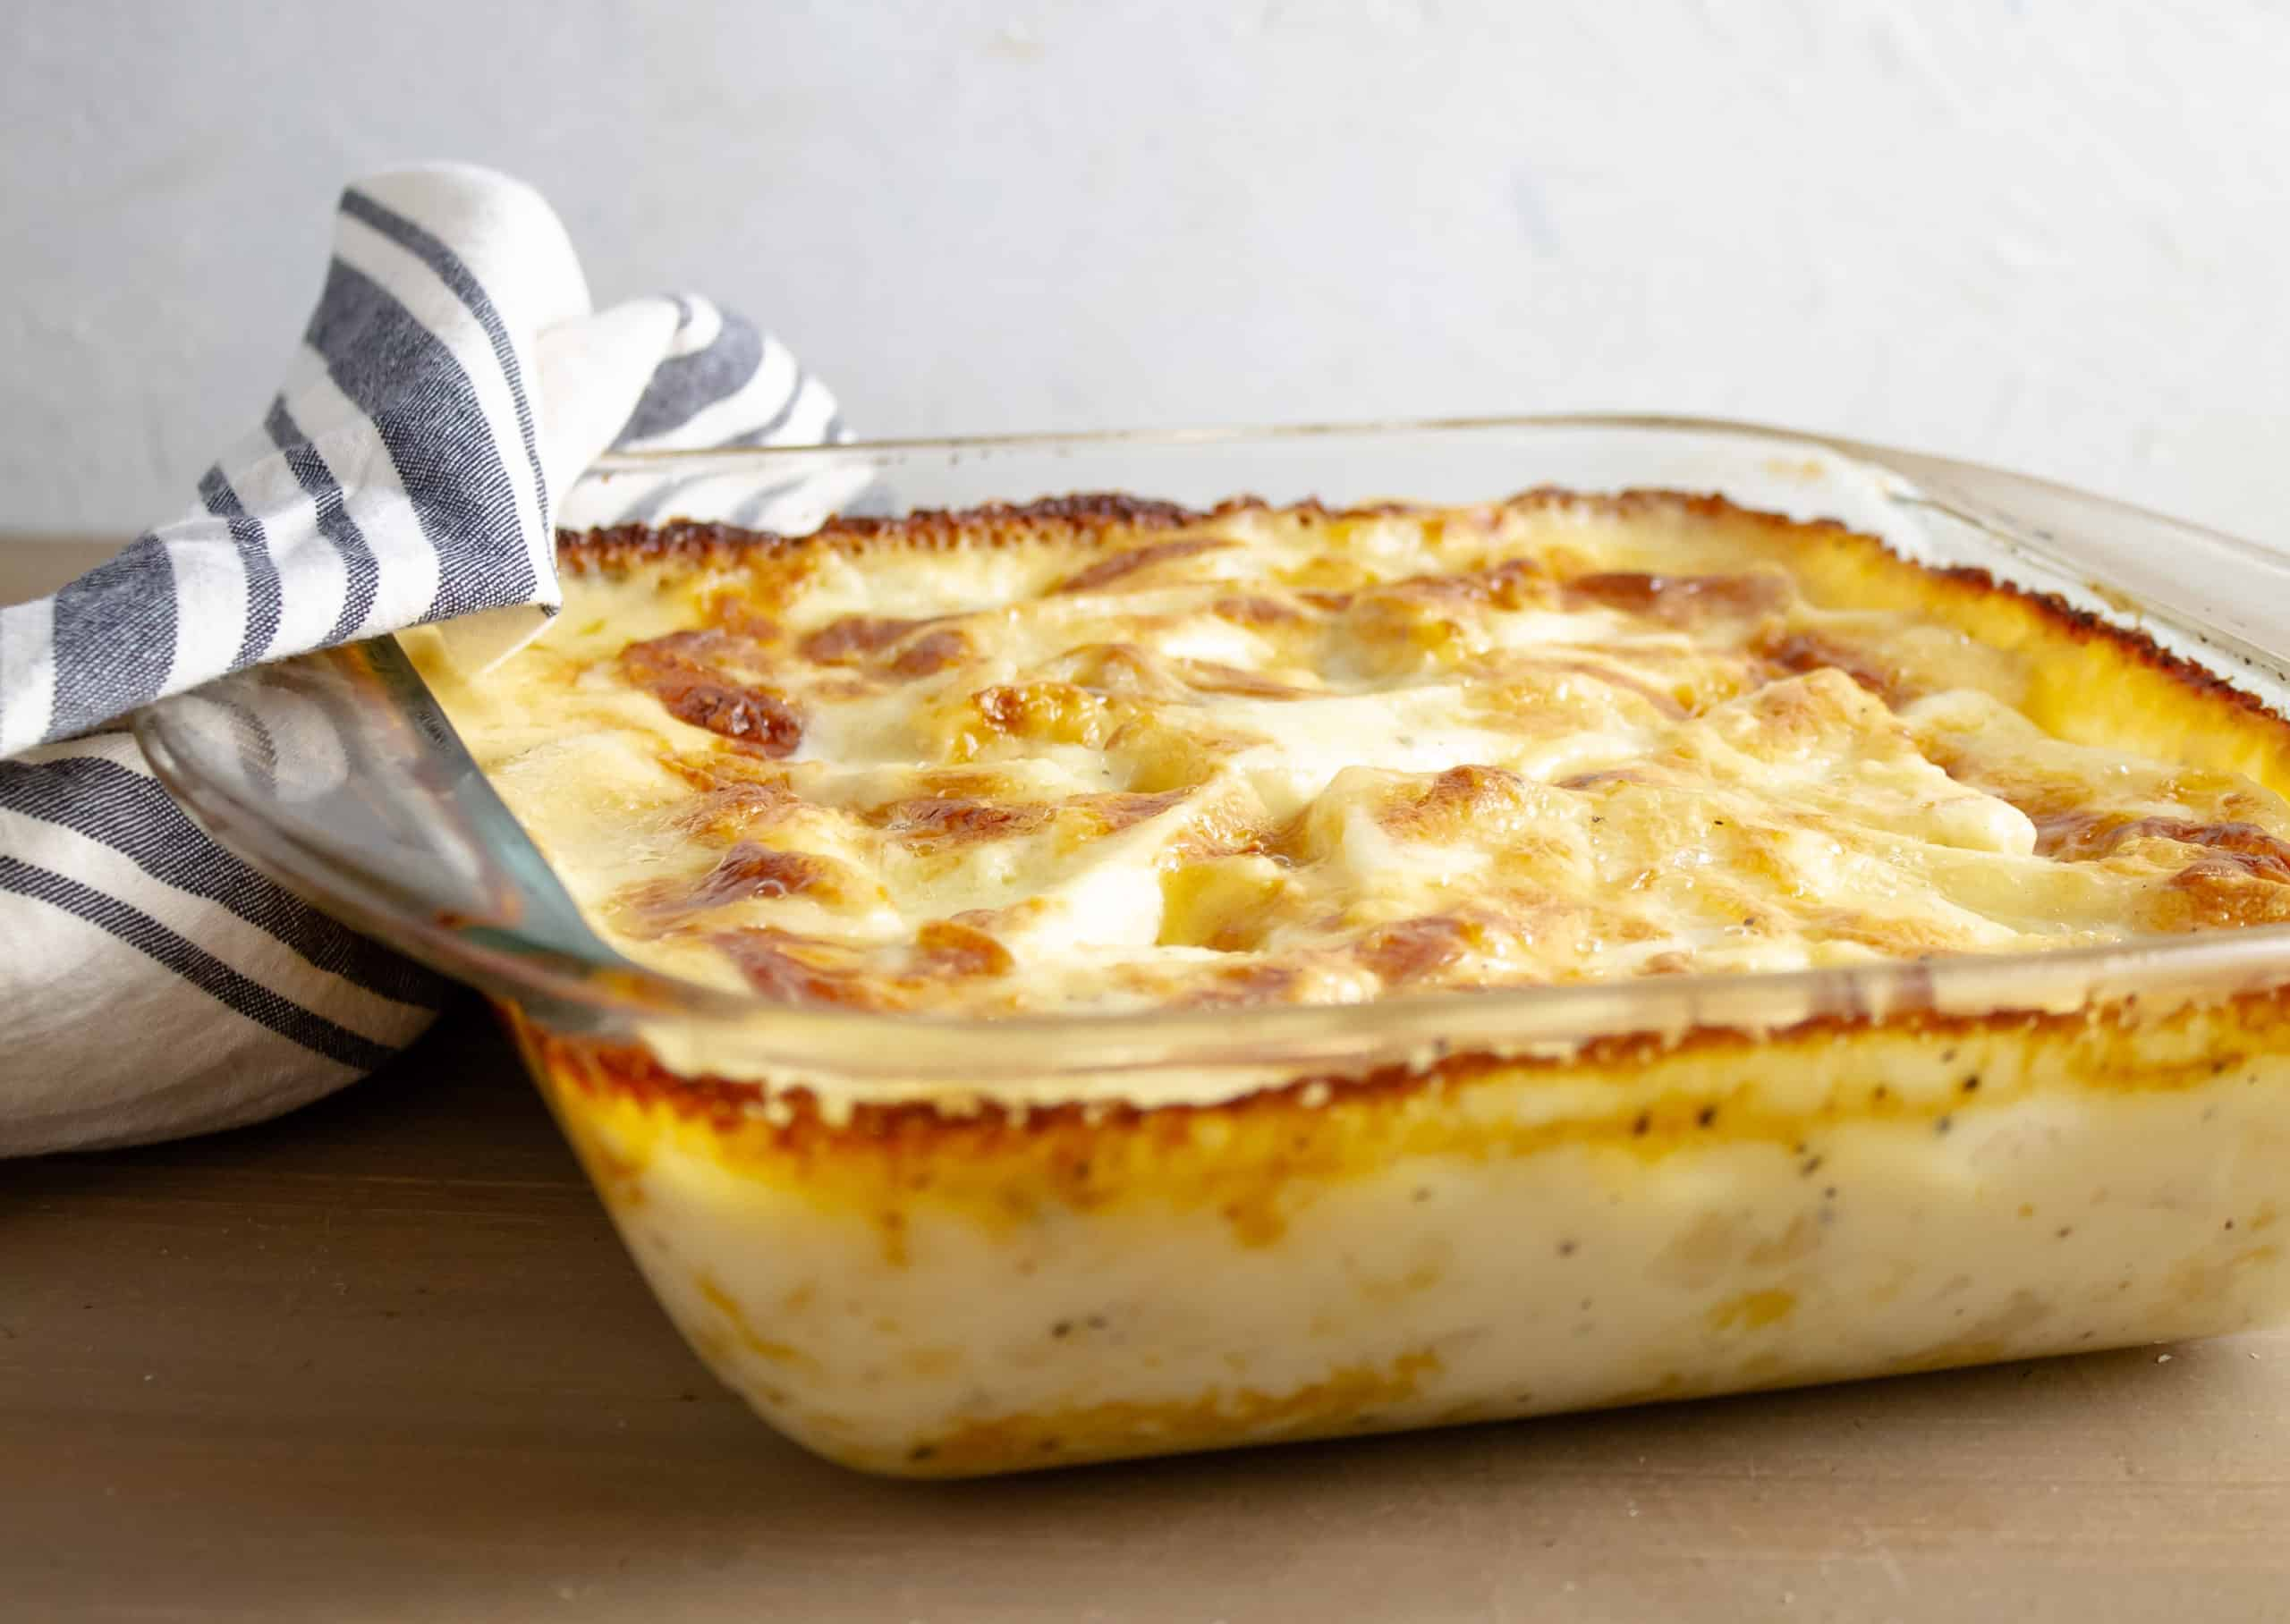 This cheese potato bake recipe is so good that I doubt you'll have leftovers. It's a great casserole dish that reheats well, too.